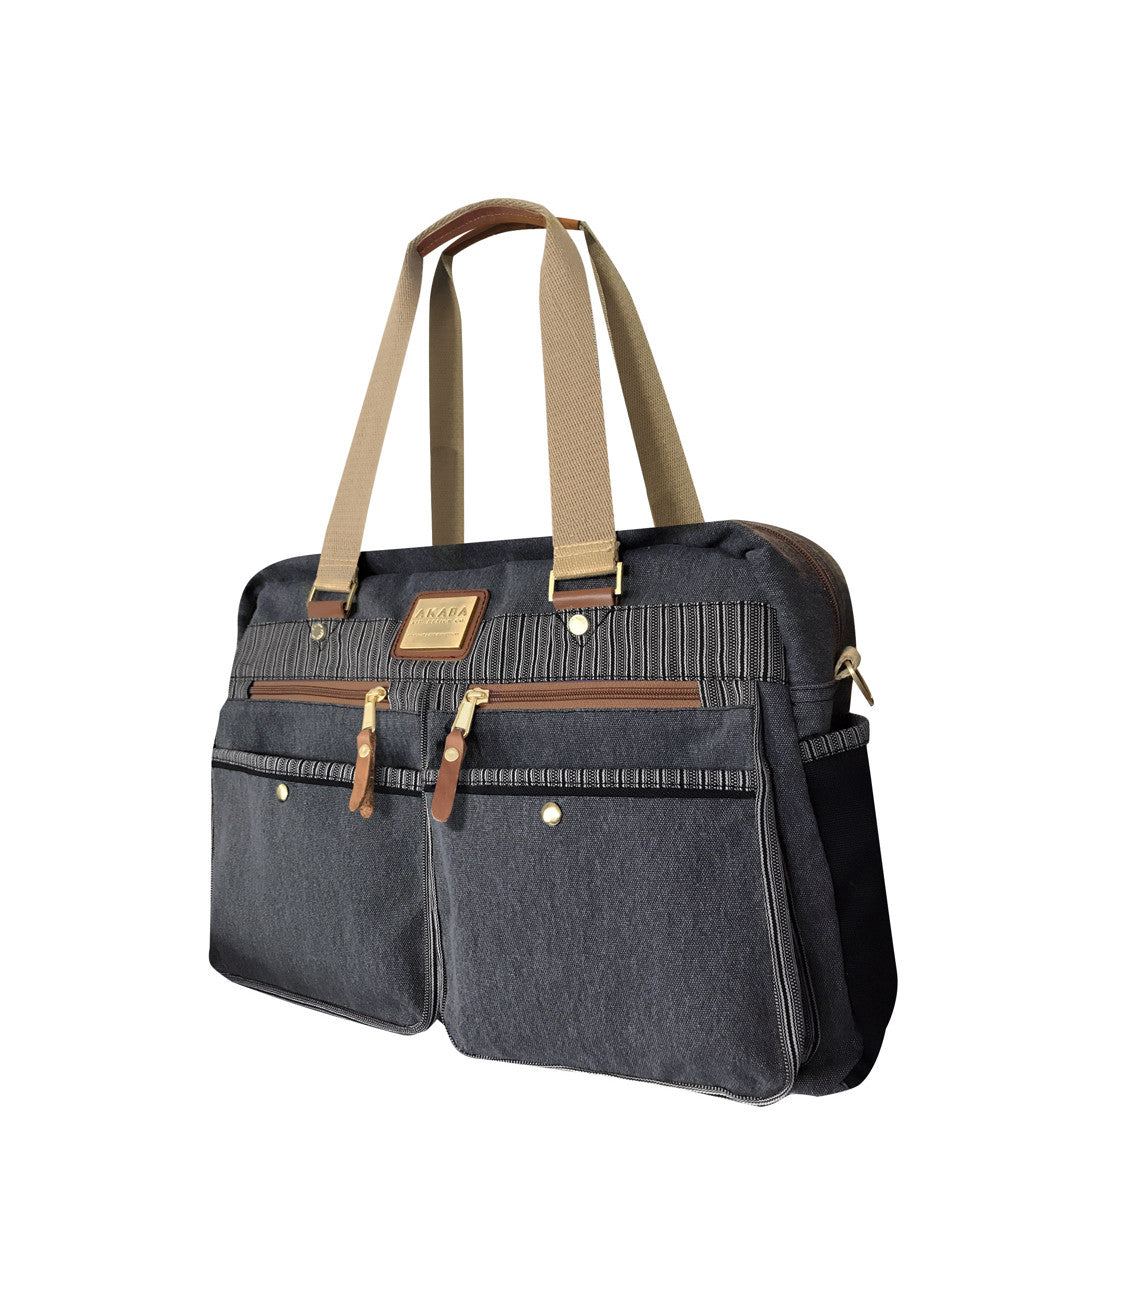 AKABA - Tercero Cargo Boston Duffle Bag Black Side